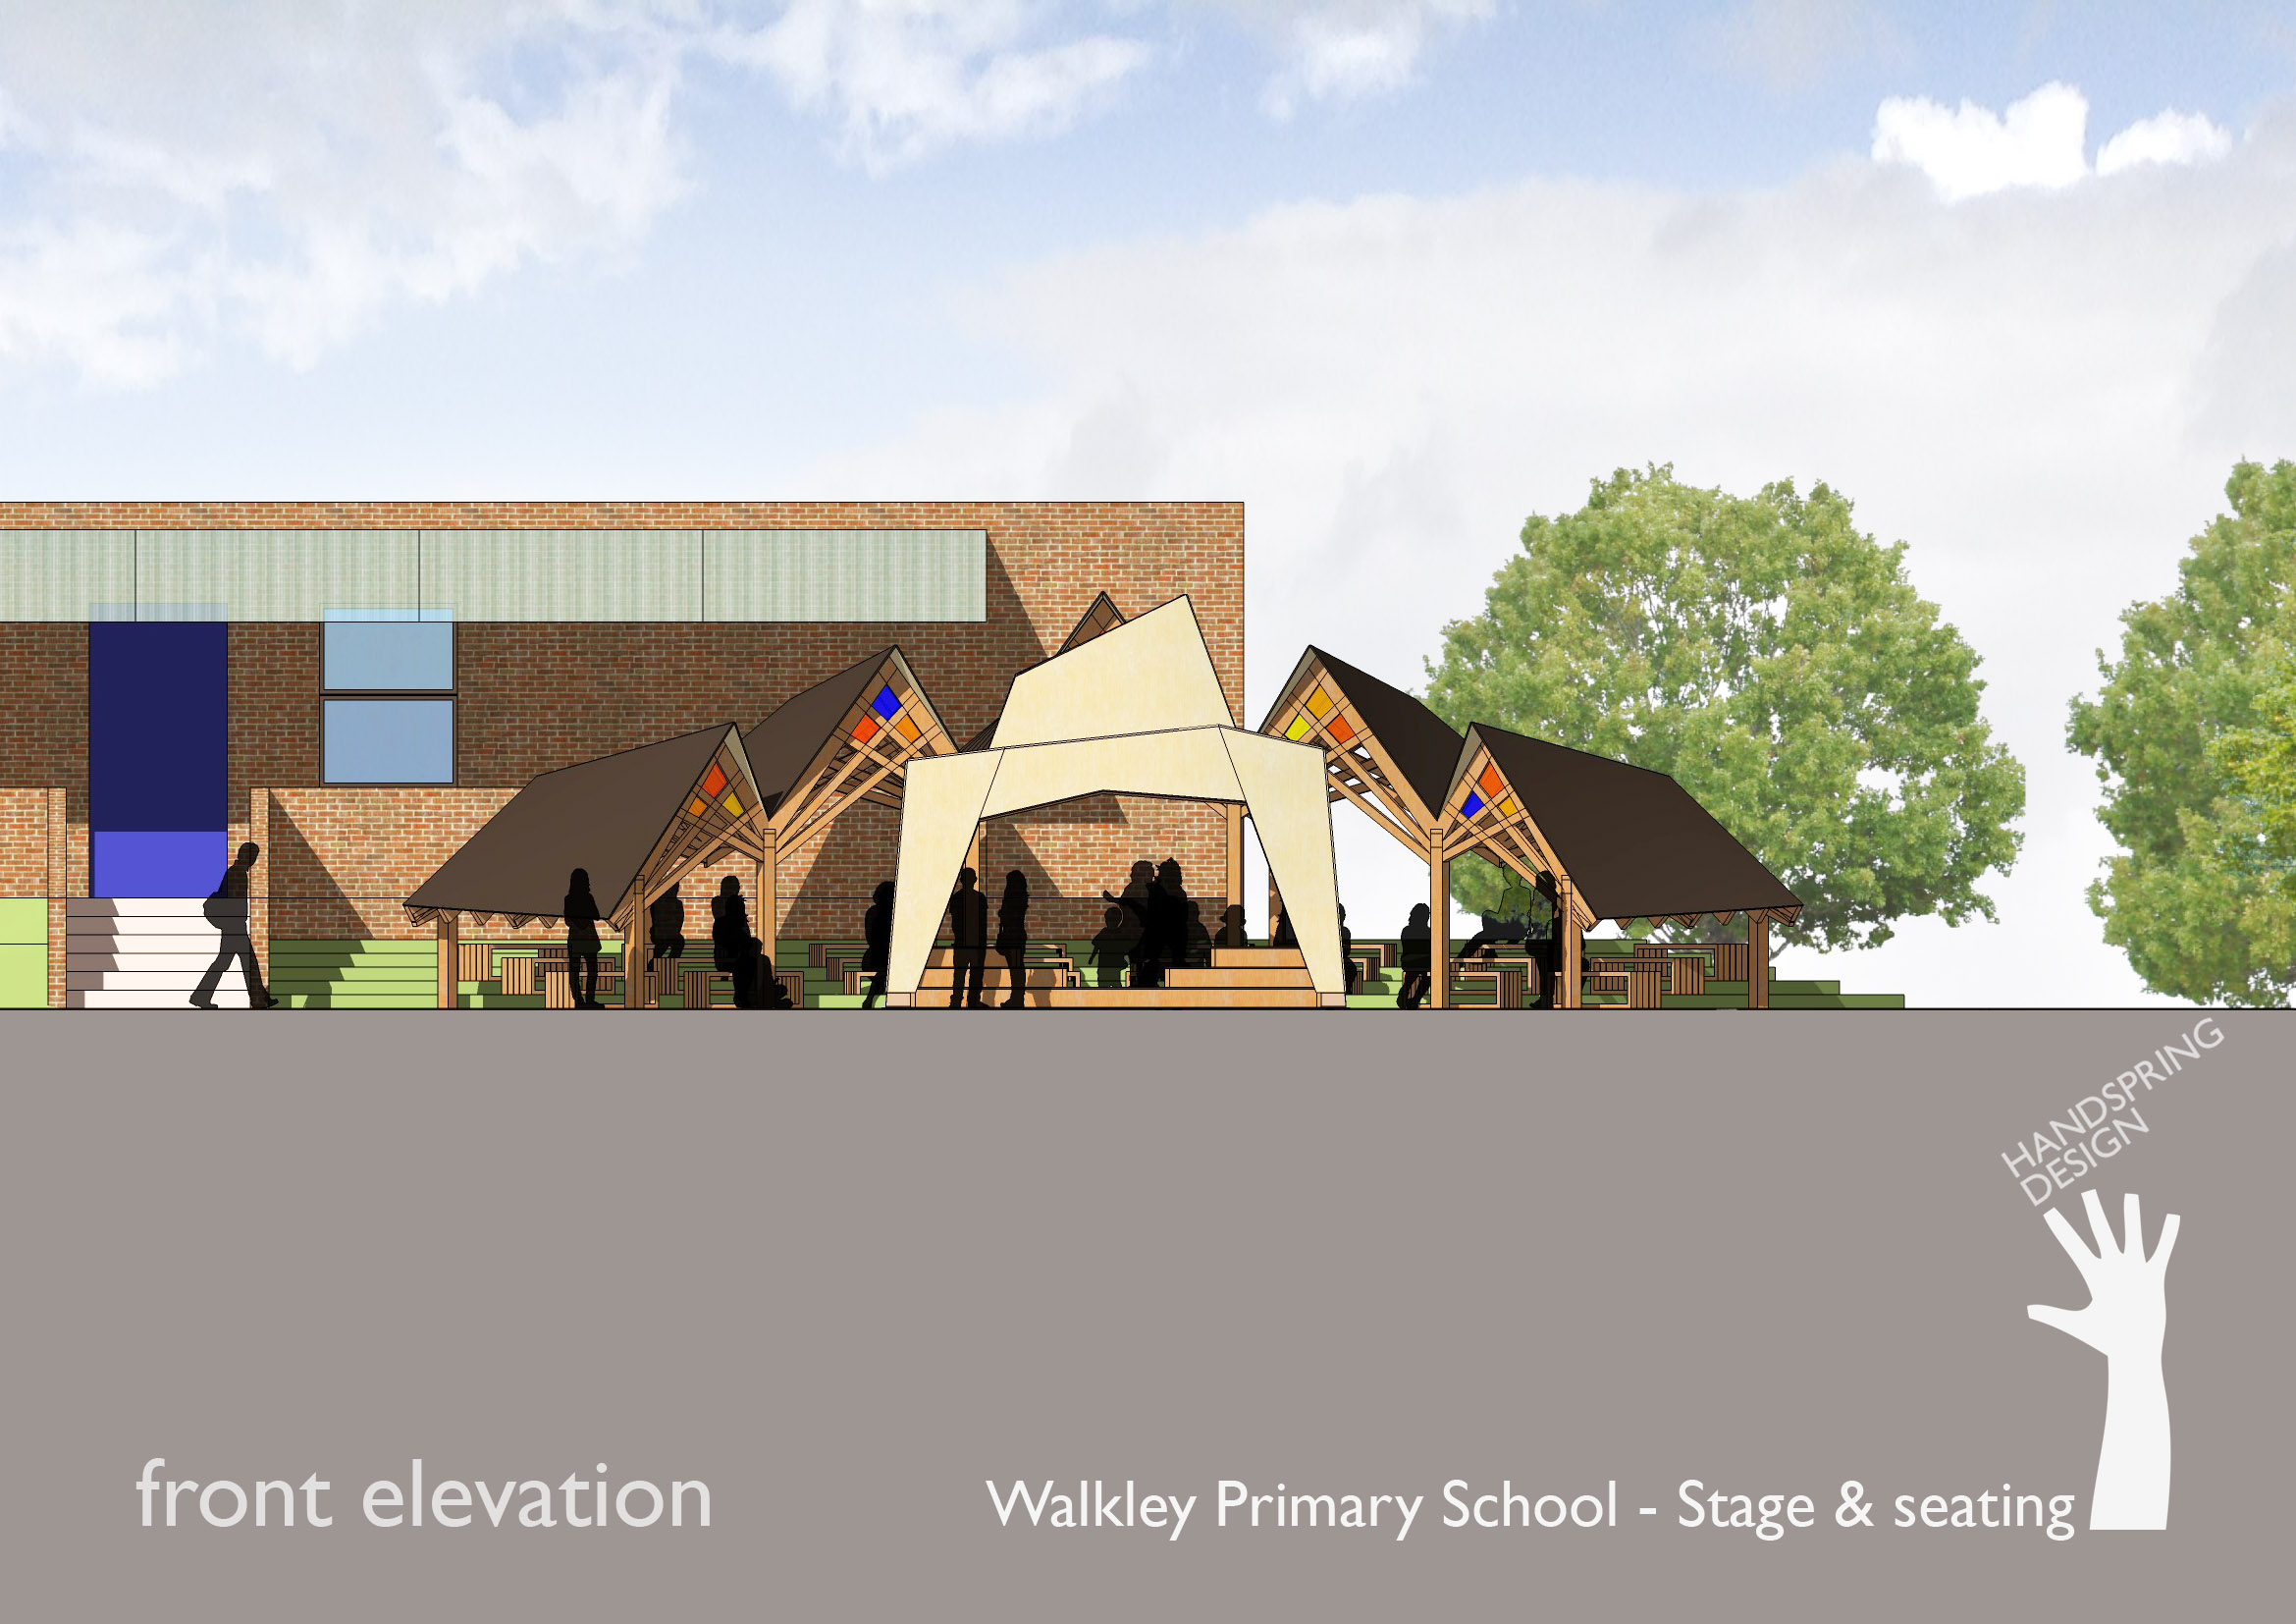 Front Elevation Designs For Schools : A walkley primary school stage seating front elevation